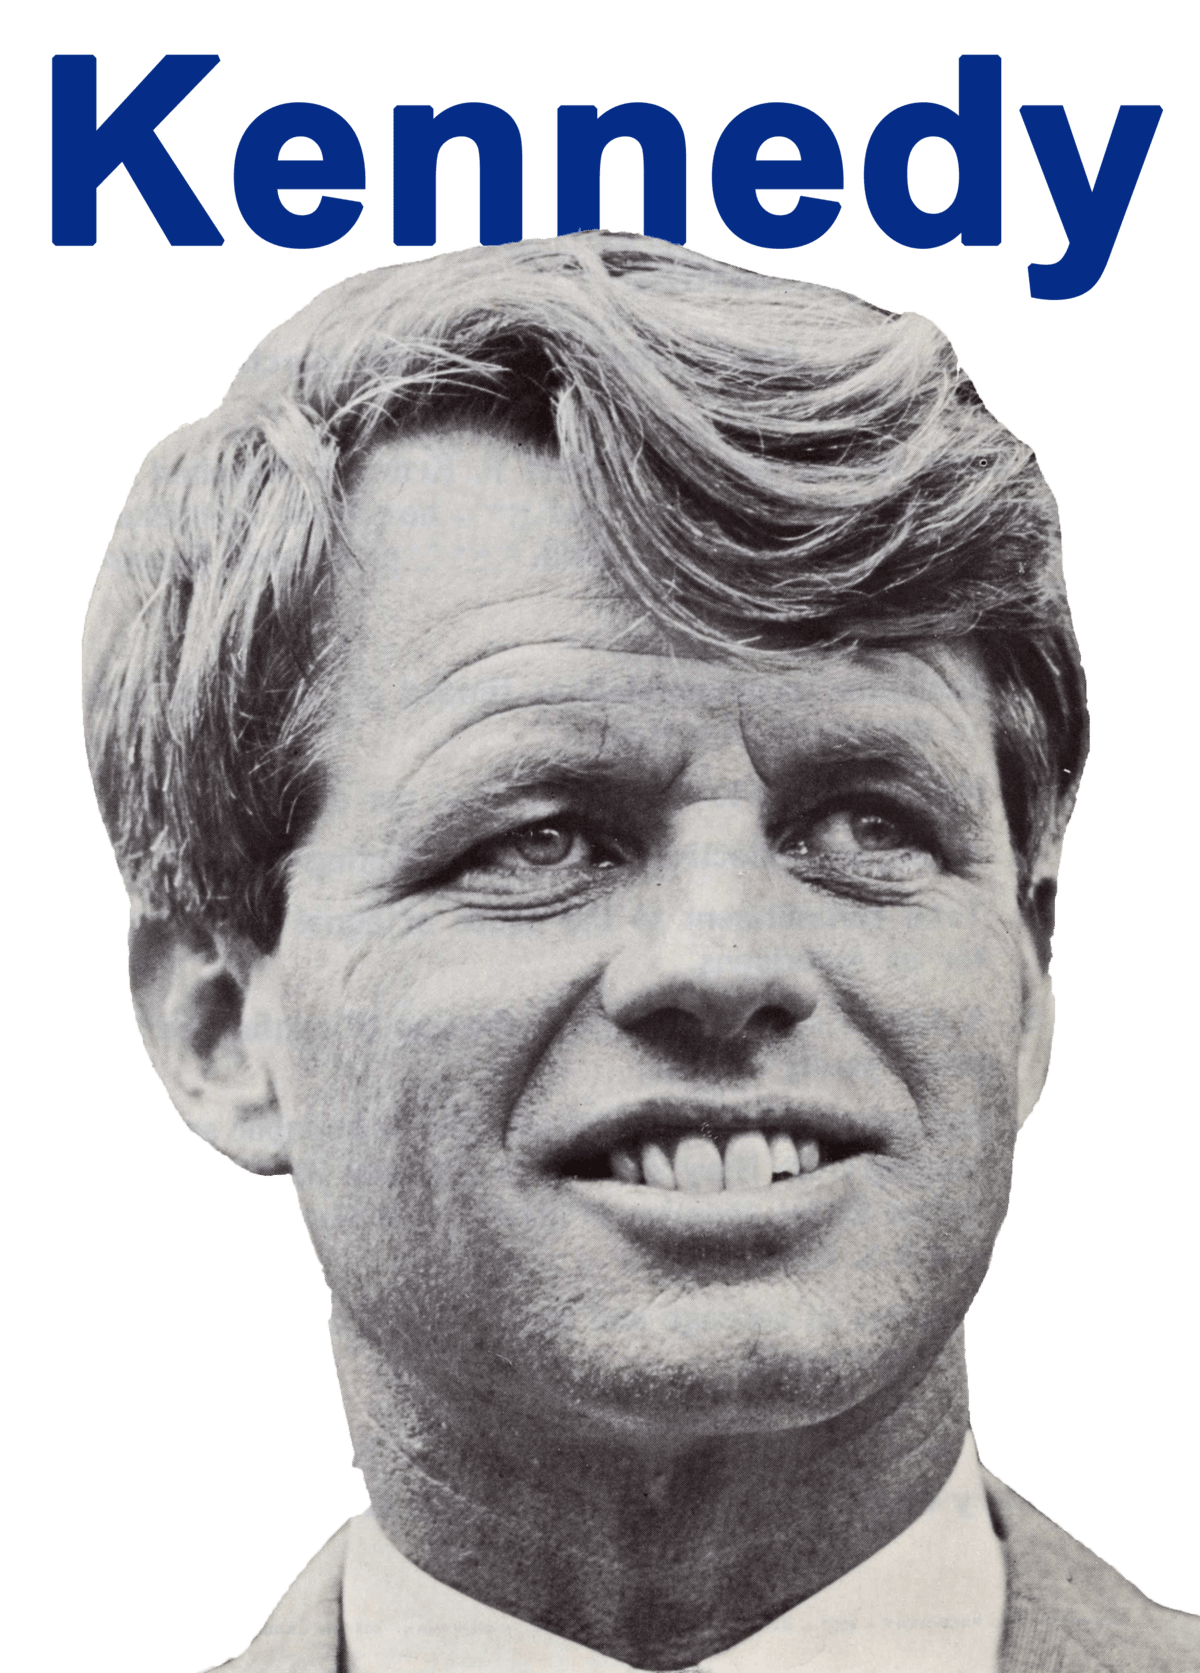 Robert F. Kennedy 1968 presidential campaign - Wikipedia